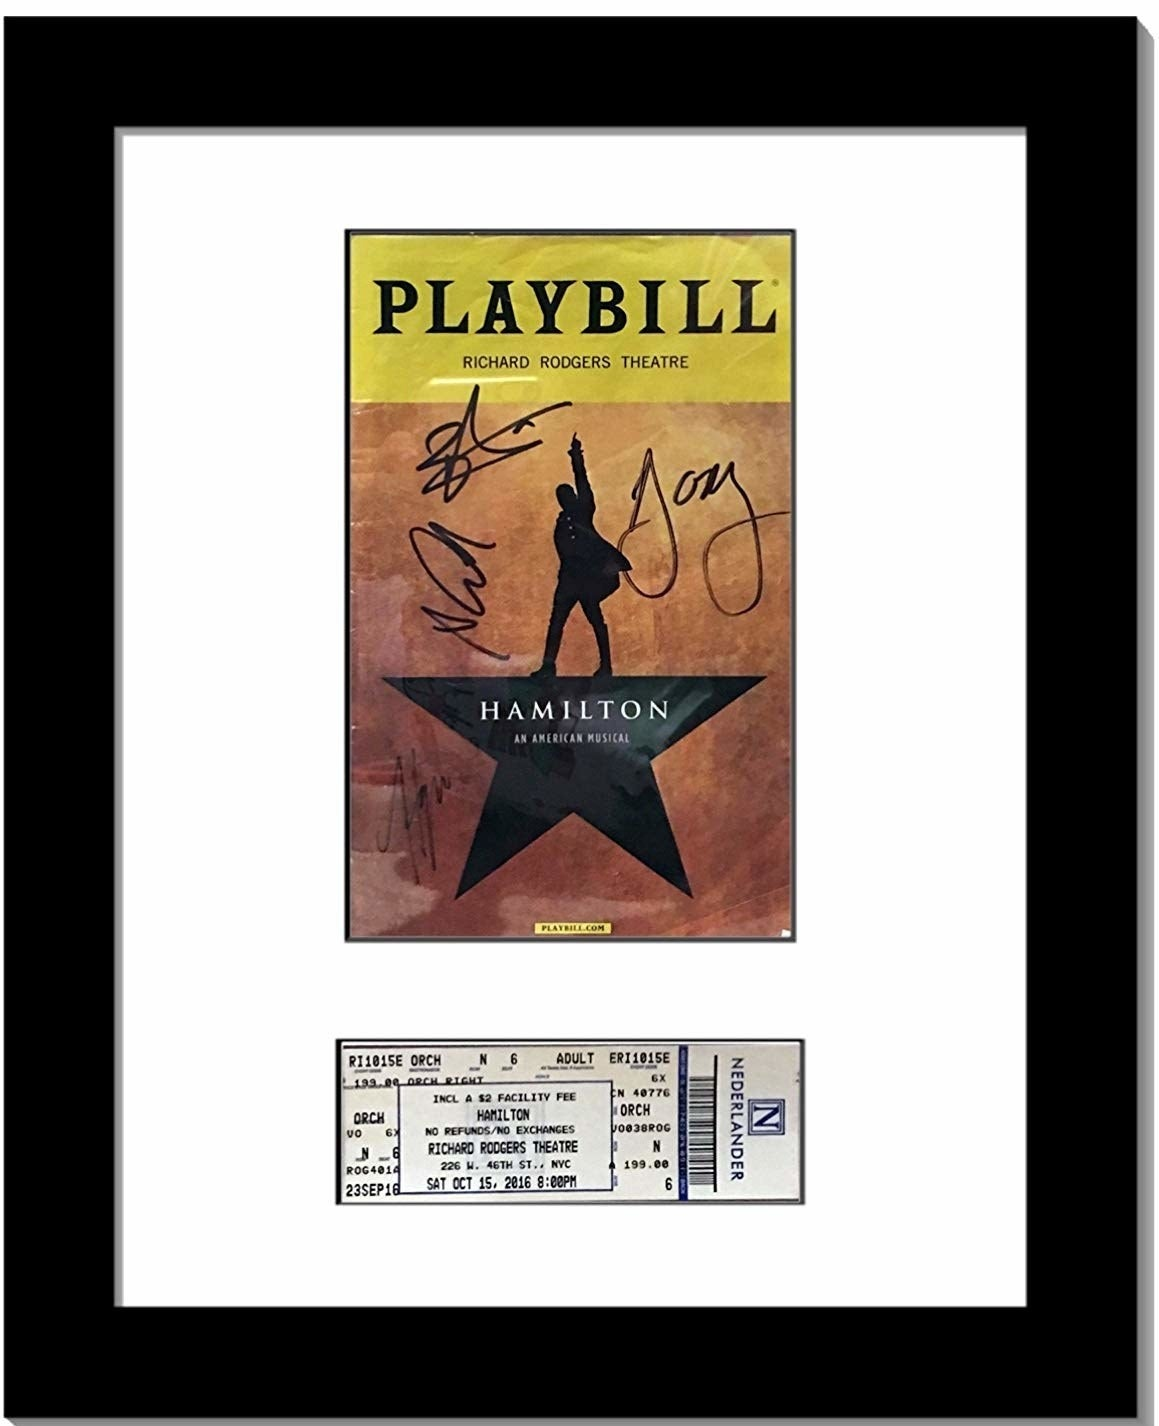 Black frame with white matting and a space for a rectangle Playbill and rectangle ticket below